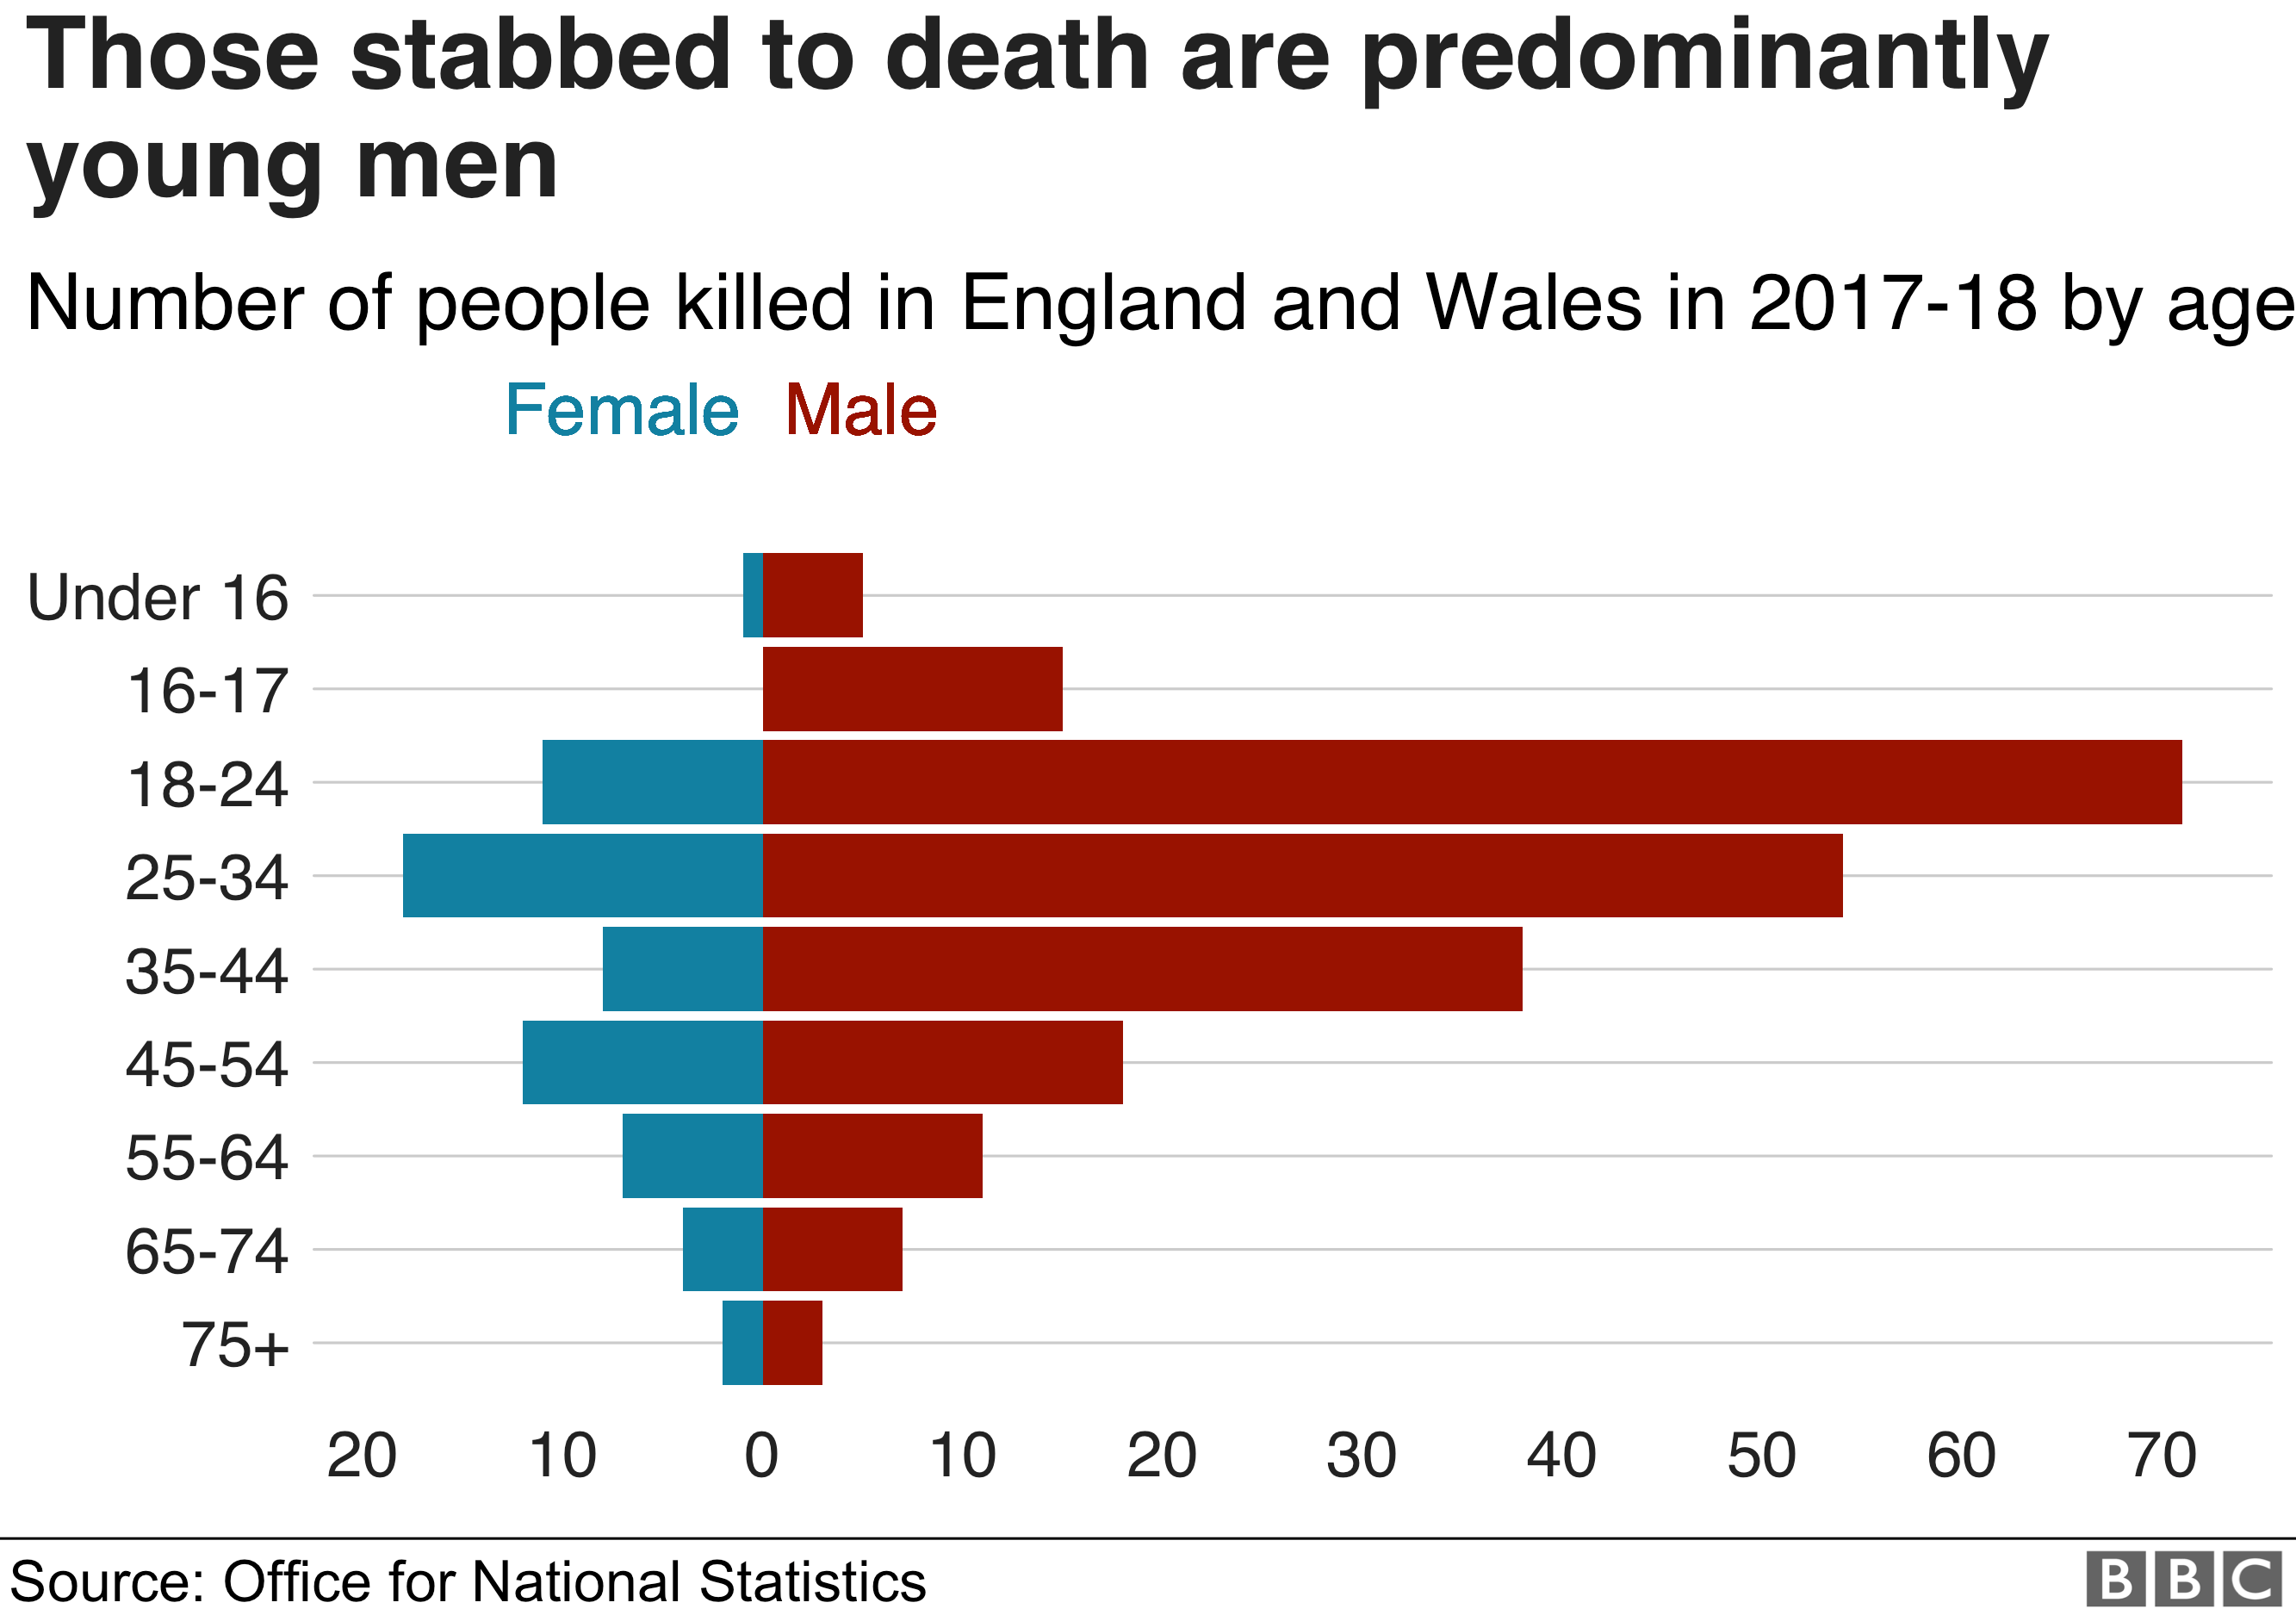 Most people who were stabbed were young men